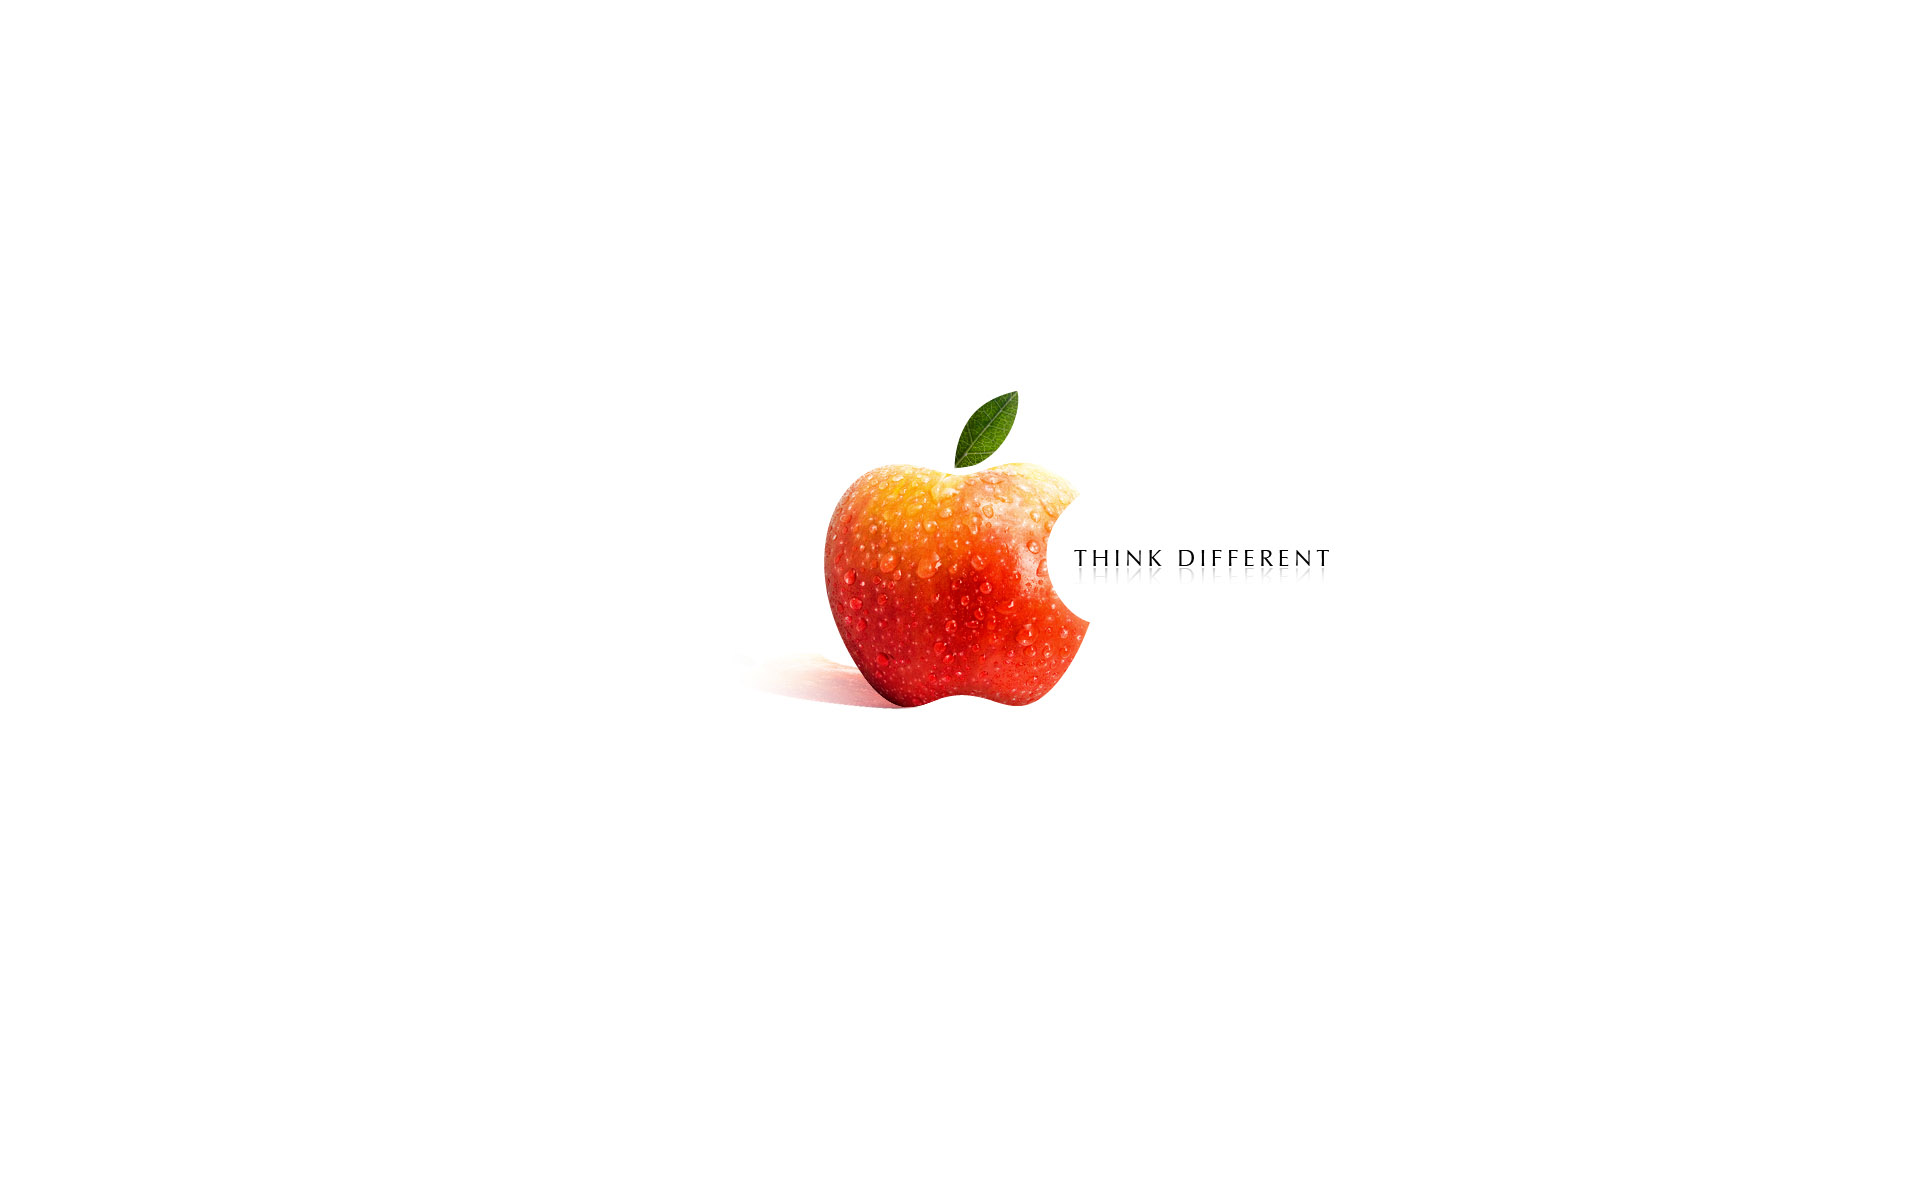 Original Apple Widescreen Wallpapers HD Wallpapers 1920x1200